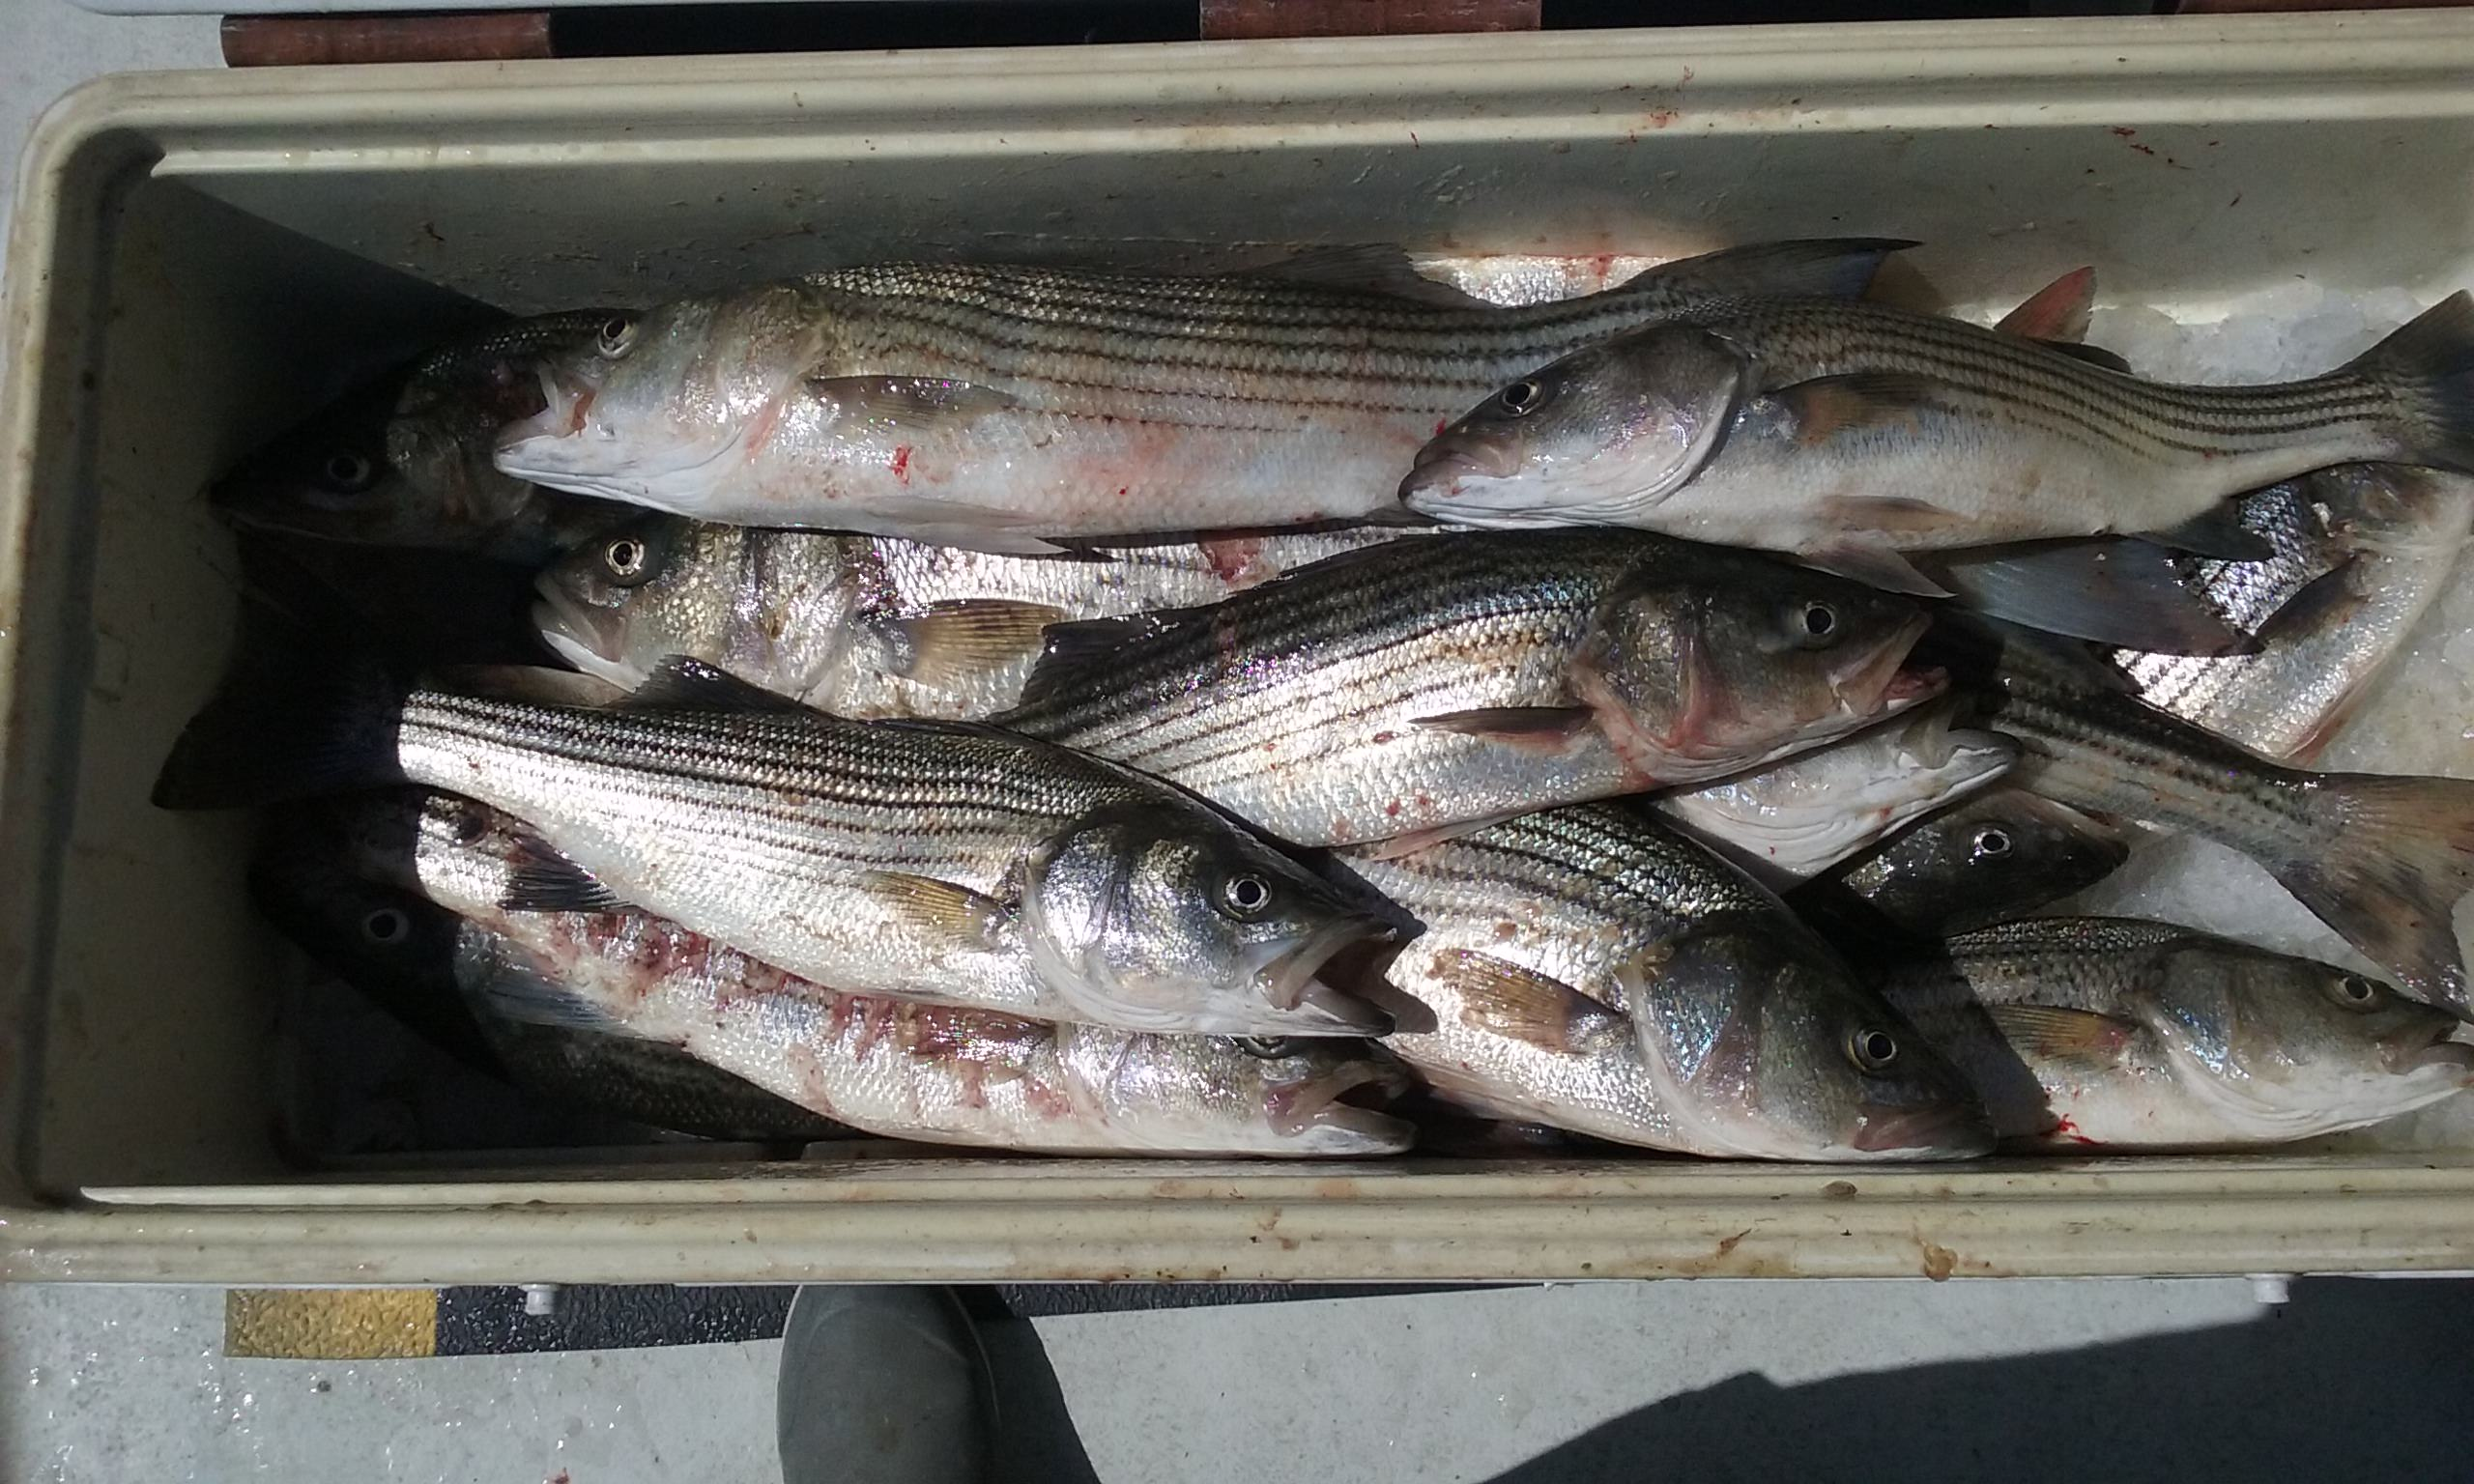 More Striped Bass Caught With Light Tackle!